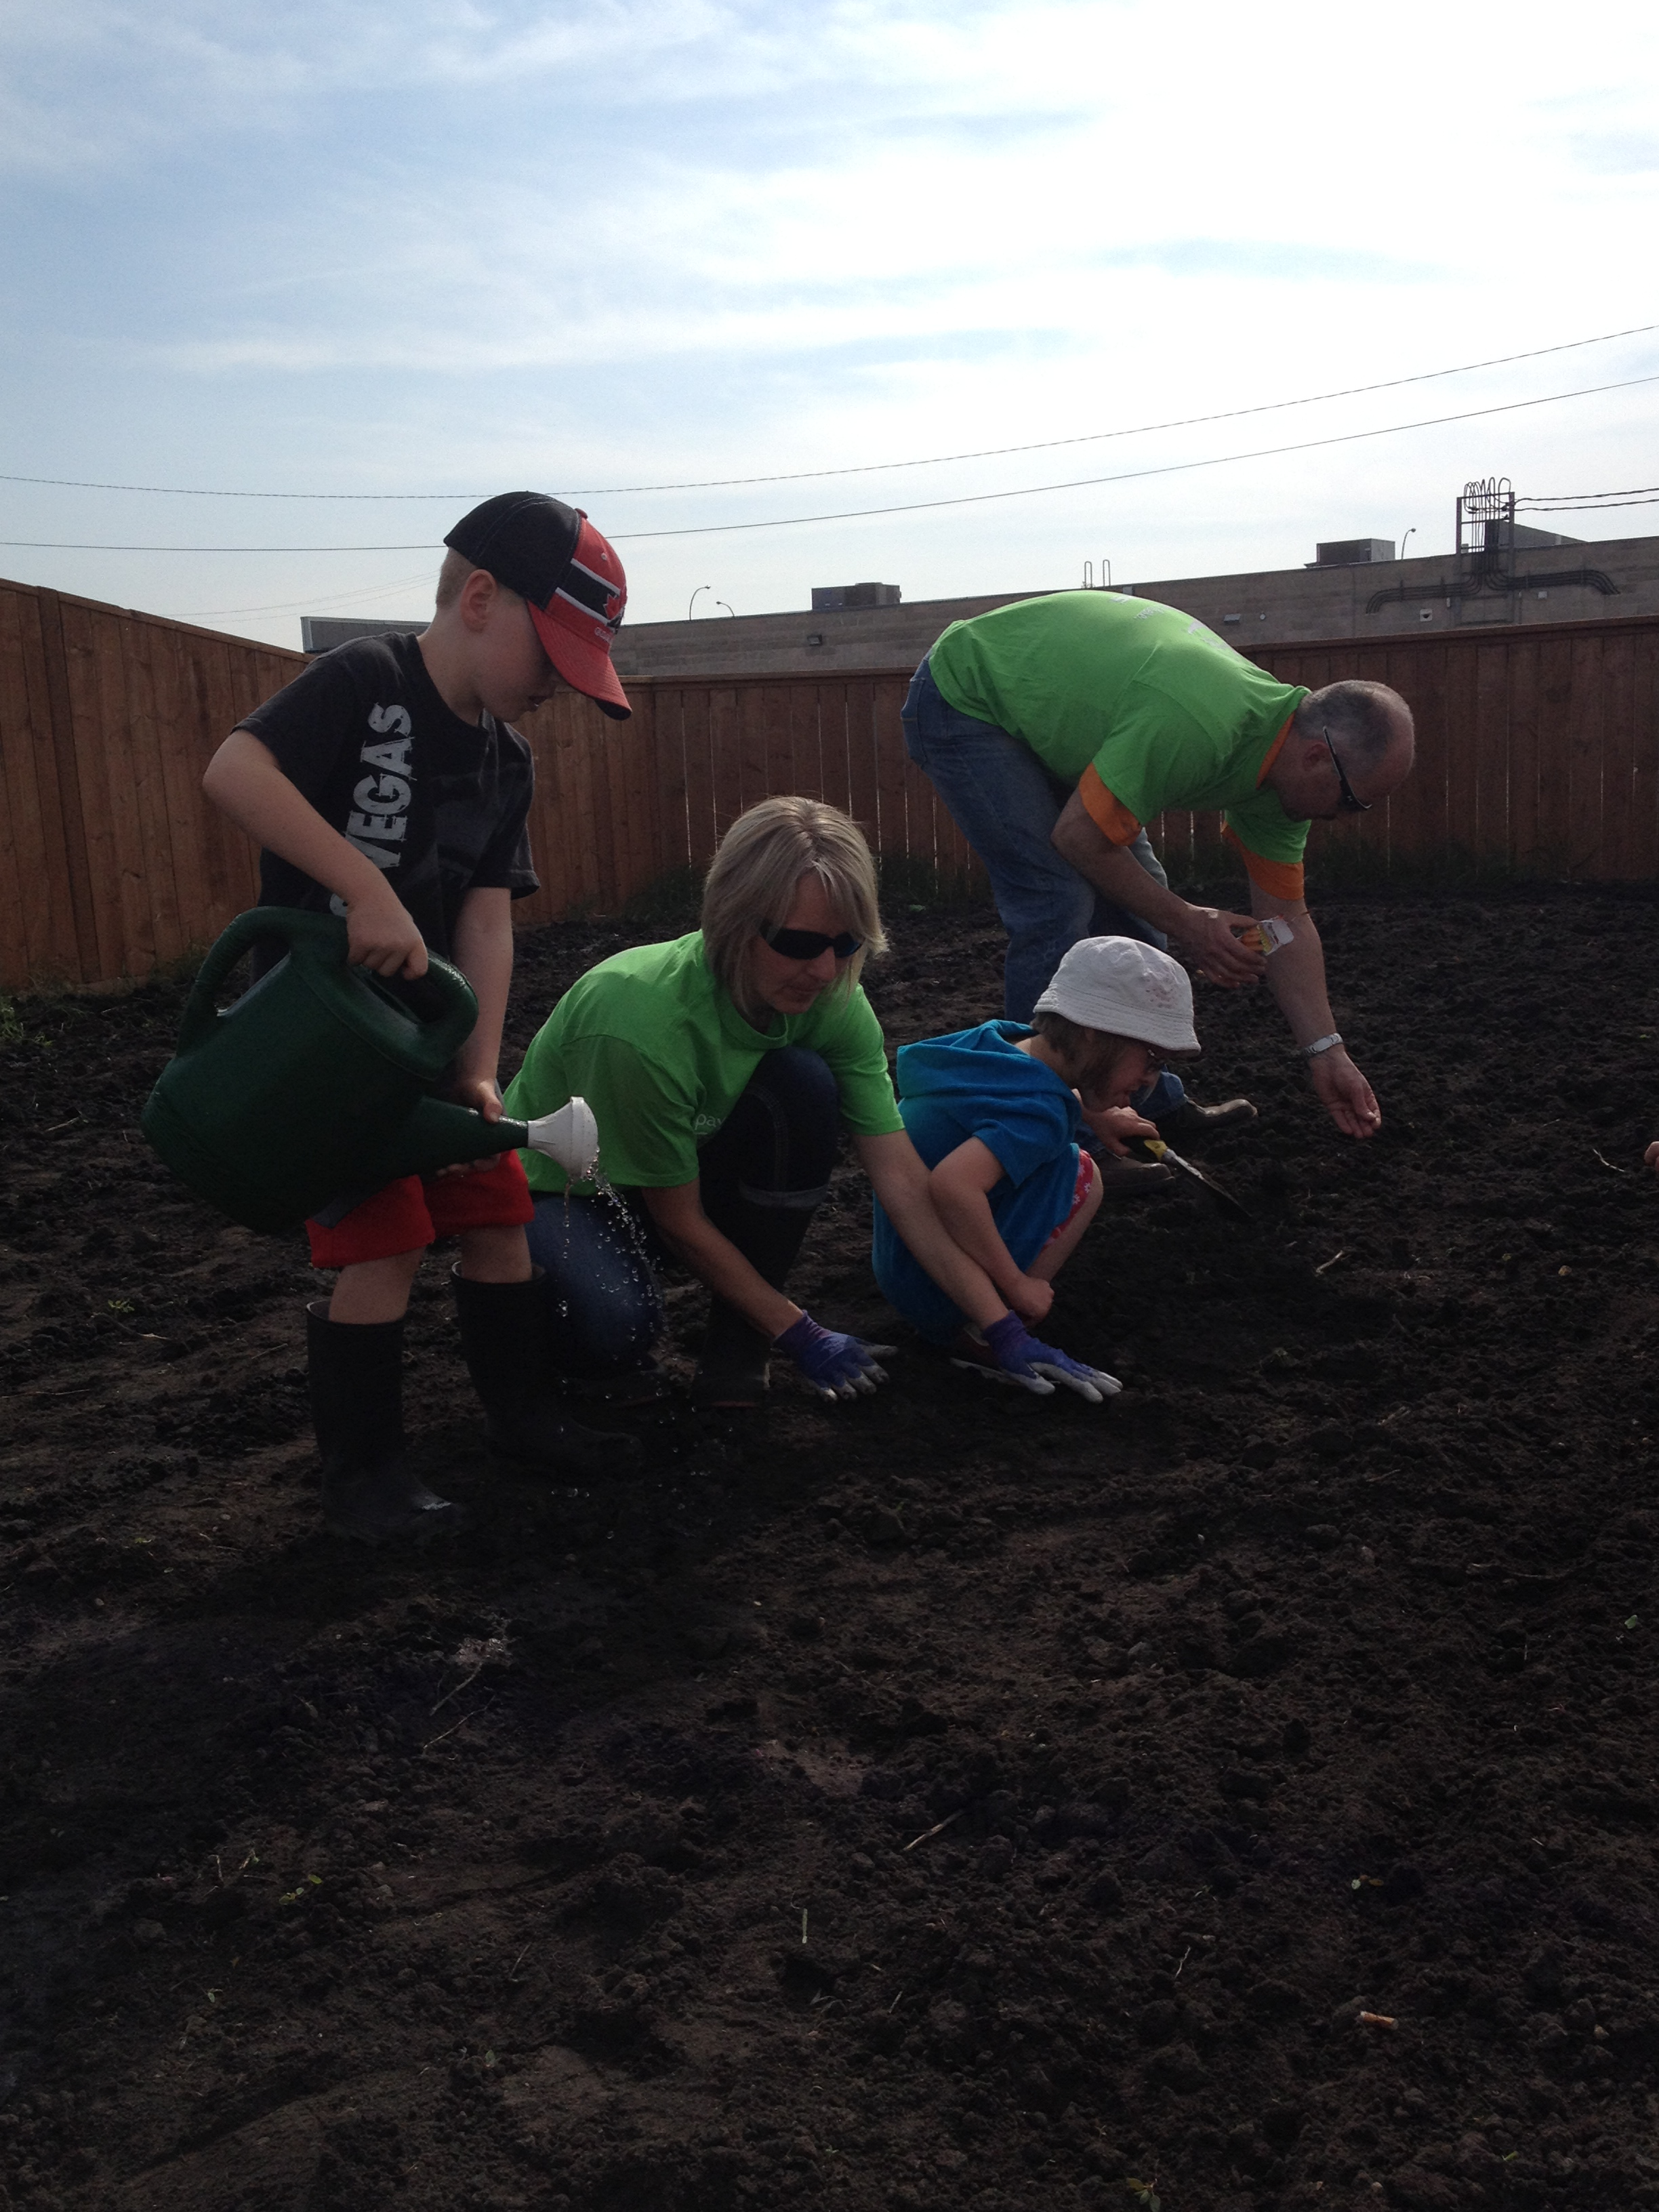 WCF Board members & families Paying it Forward through Gardening for Central Station